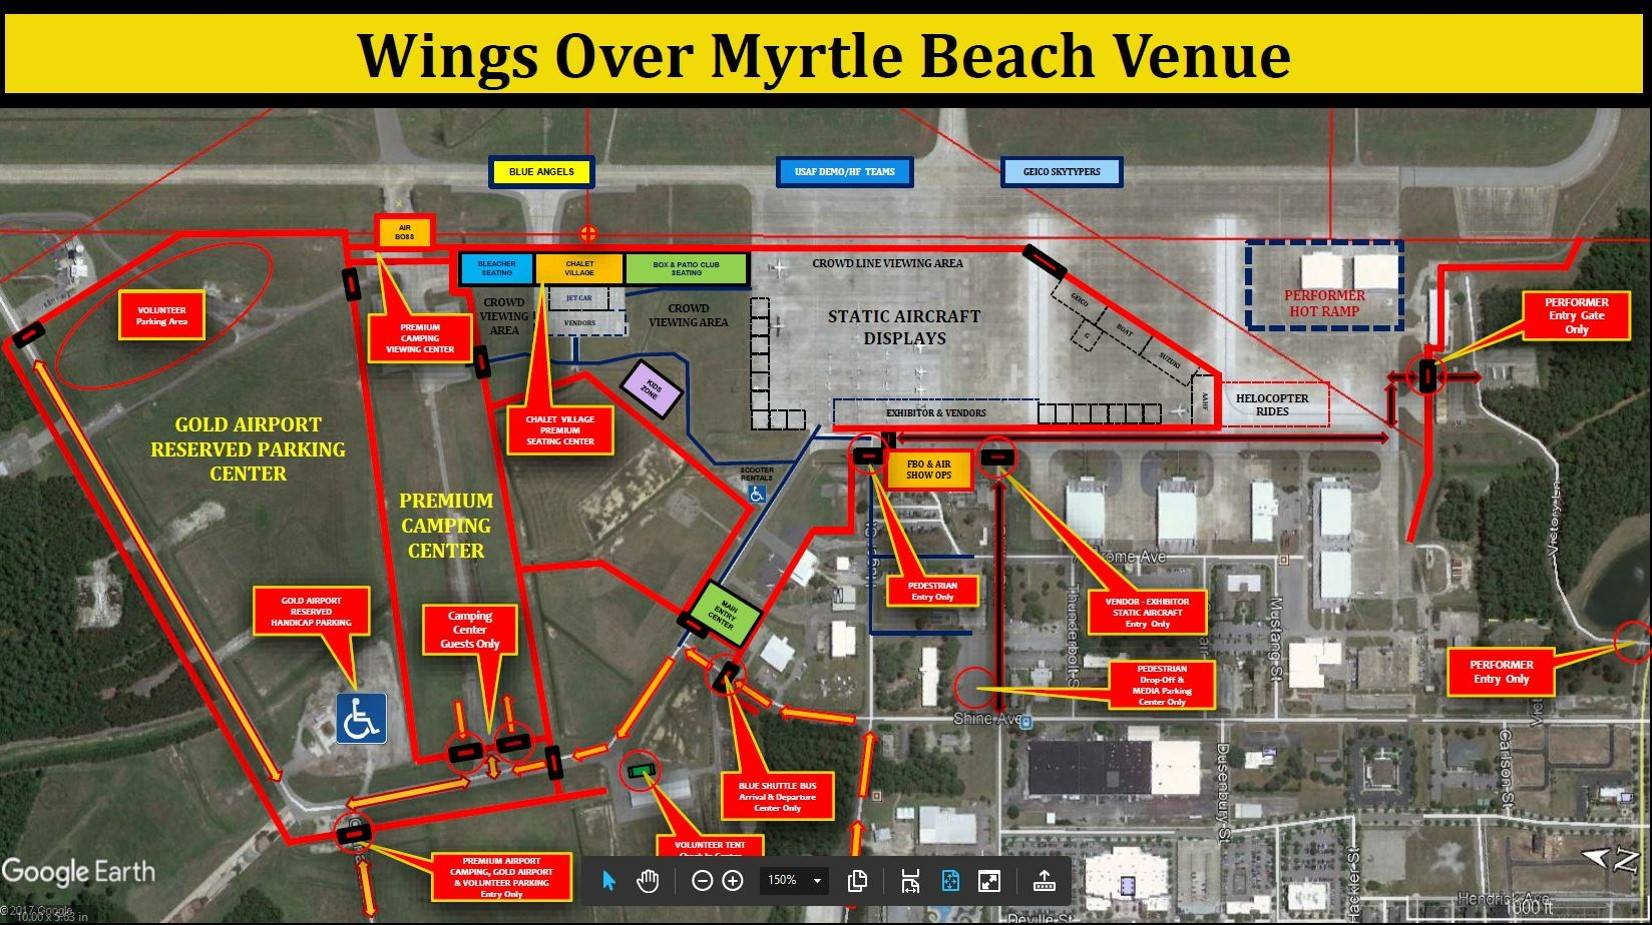 Wings Over Myrtle Beach